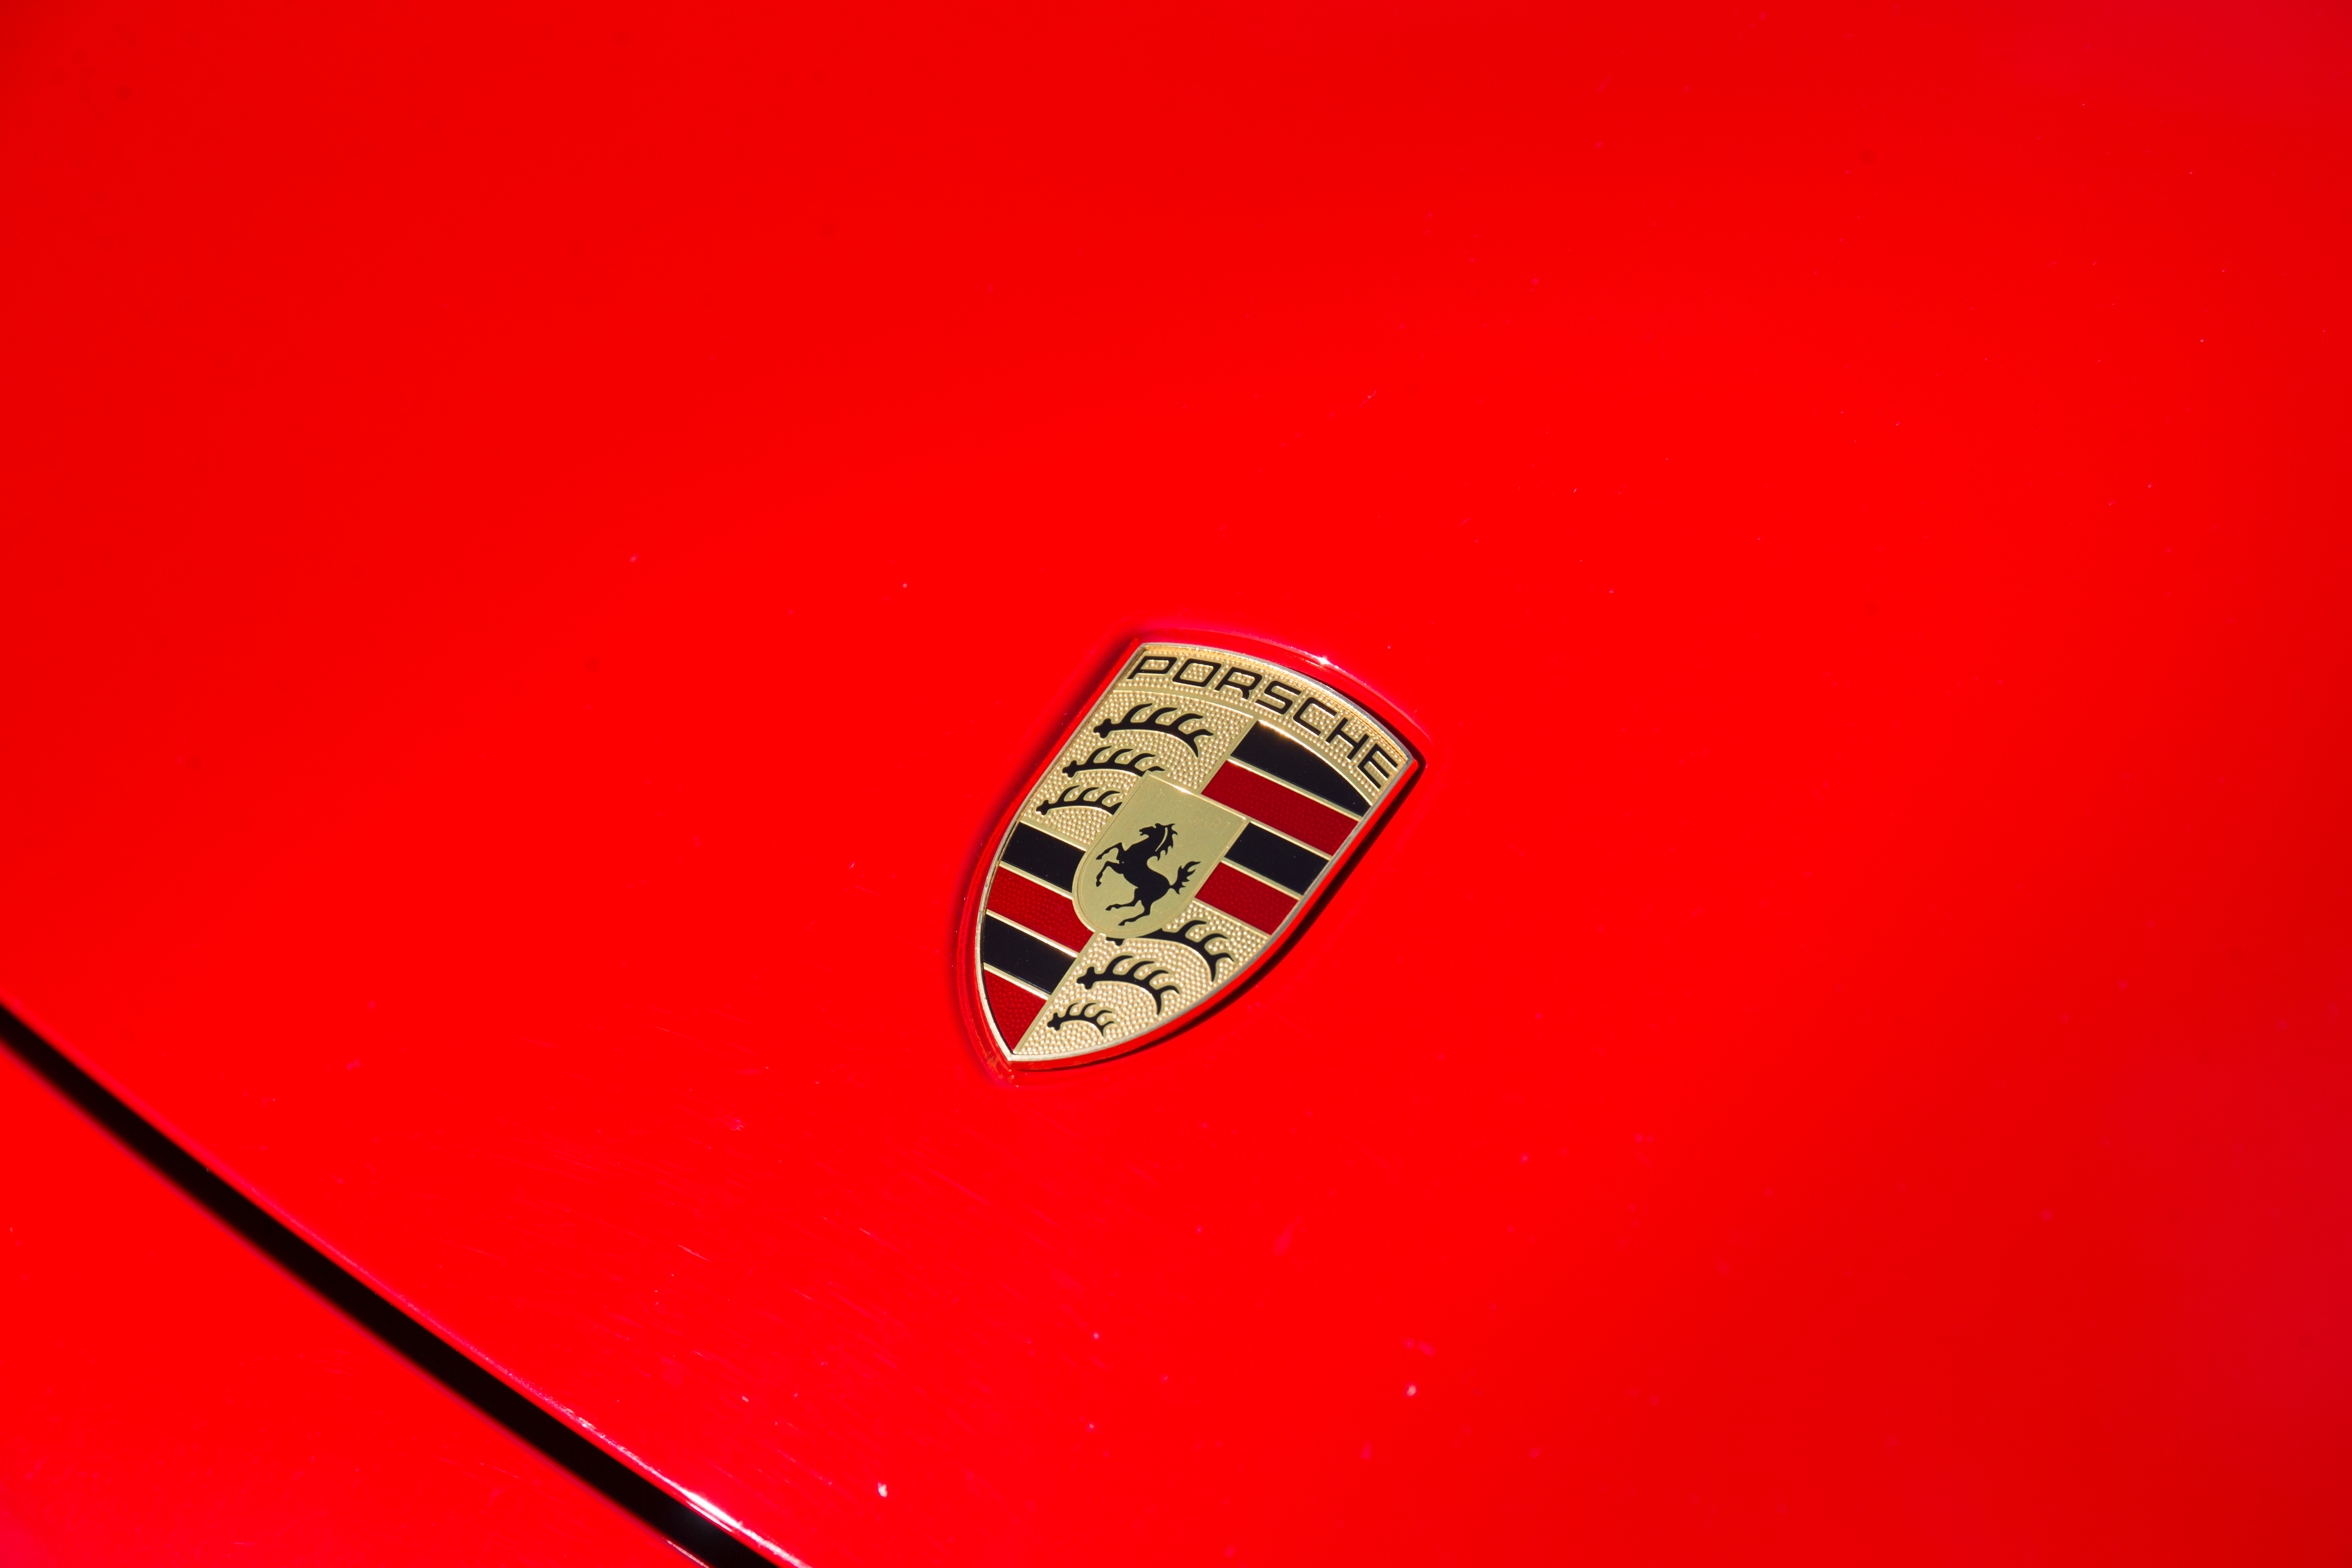 Porsche has a longstanding history in making sports cars